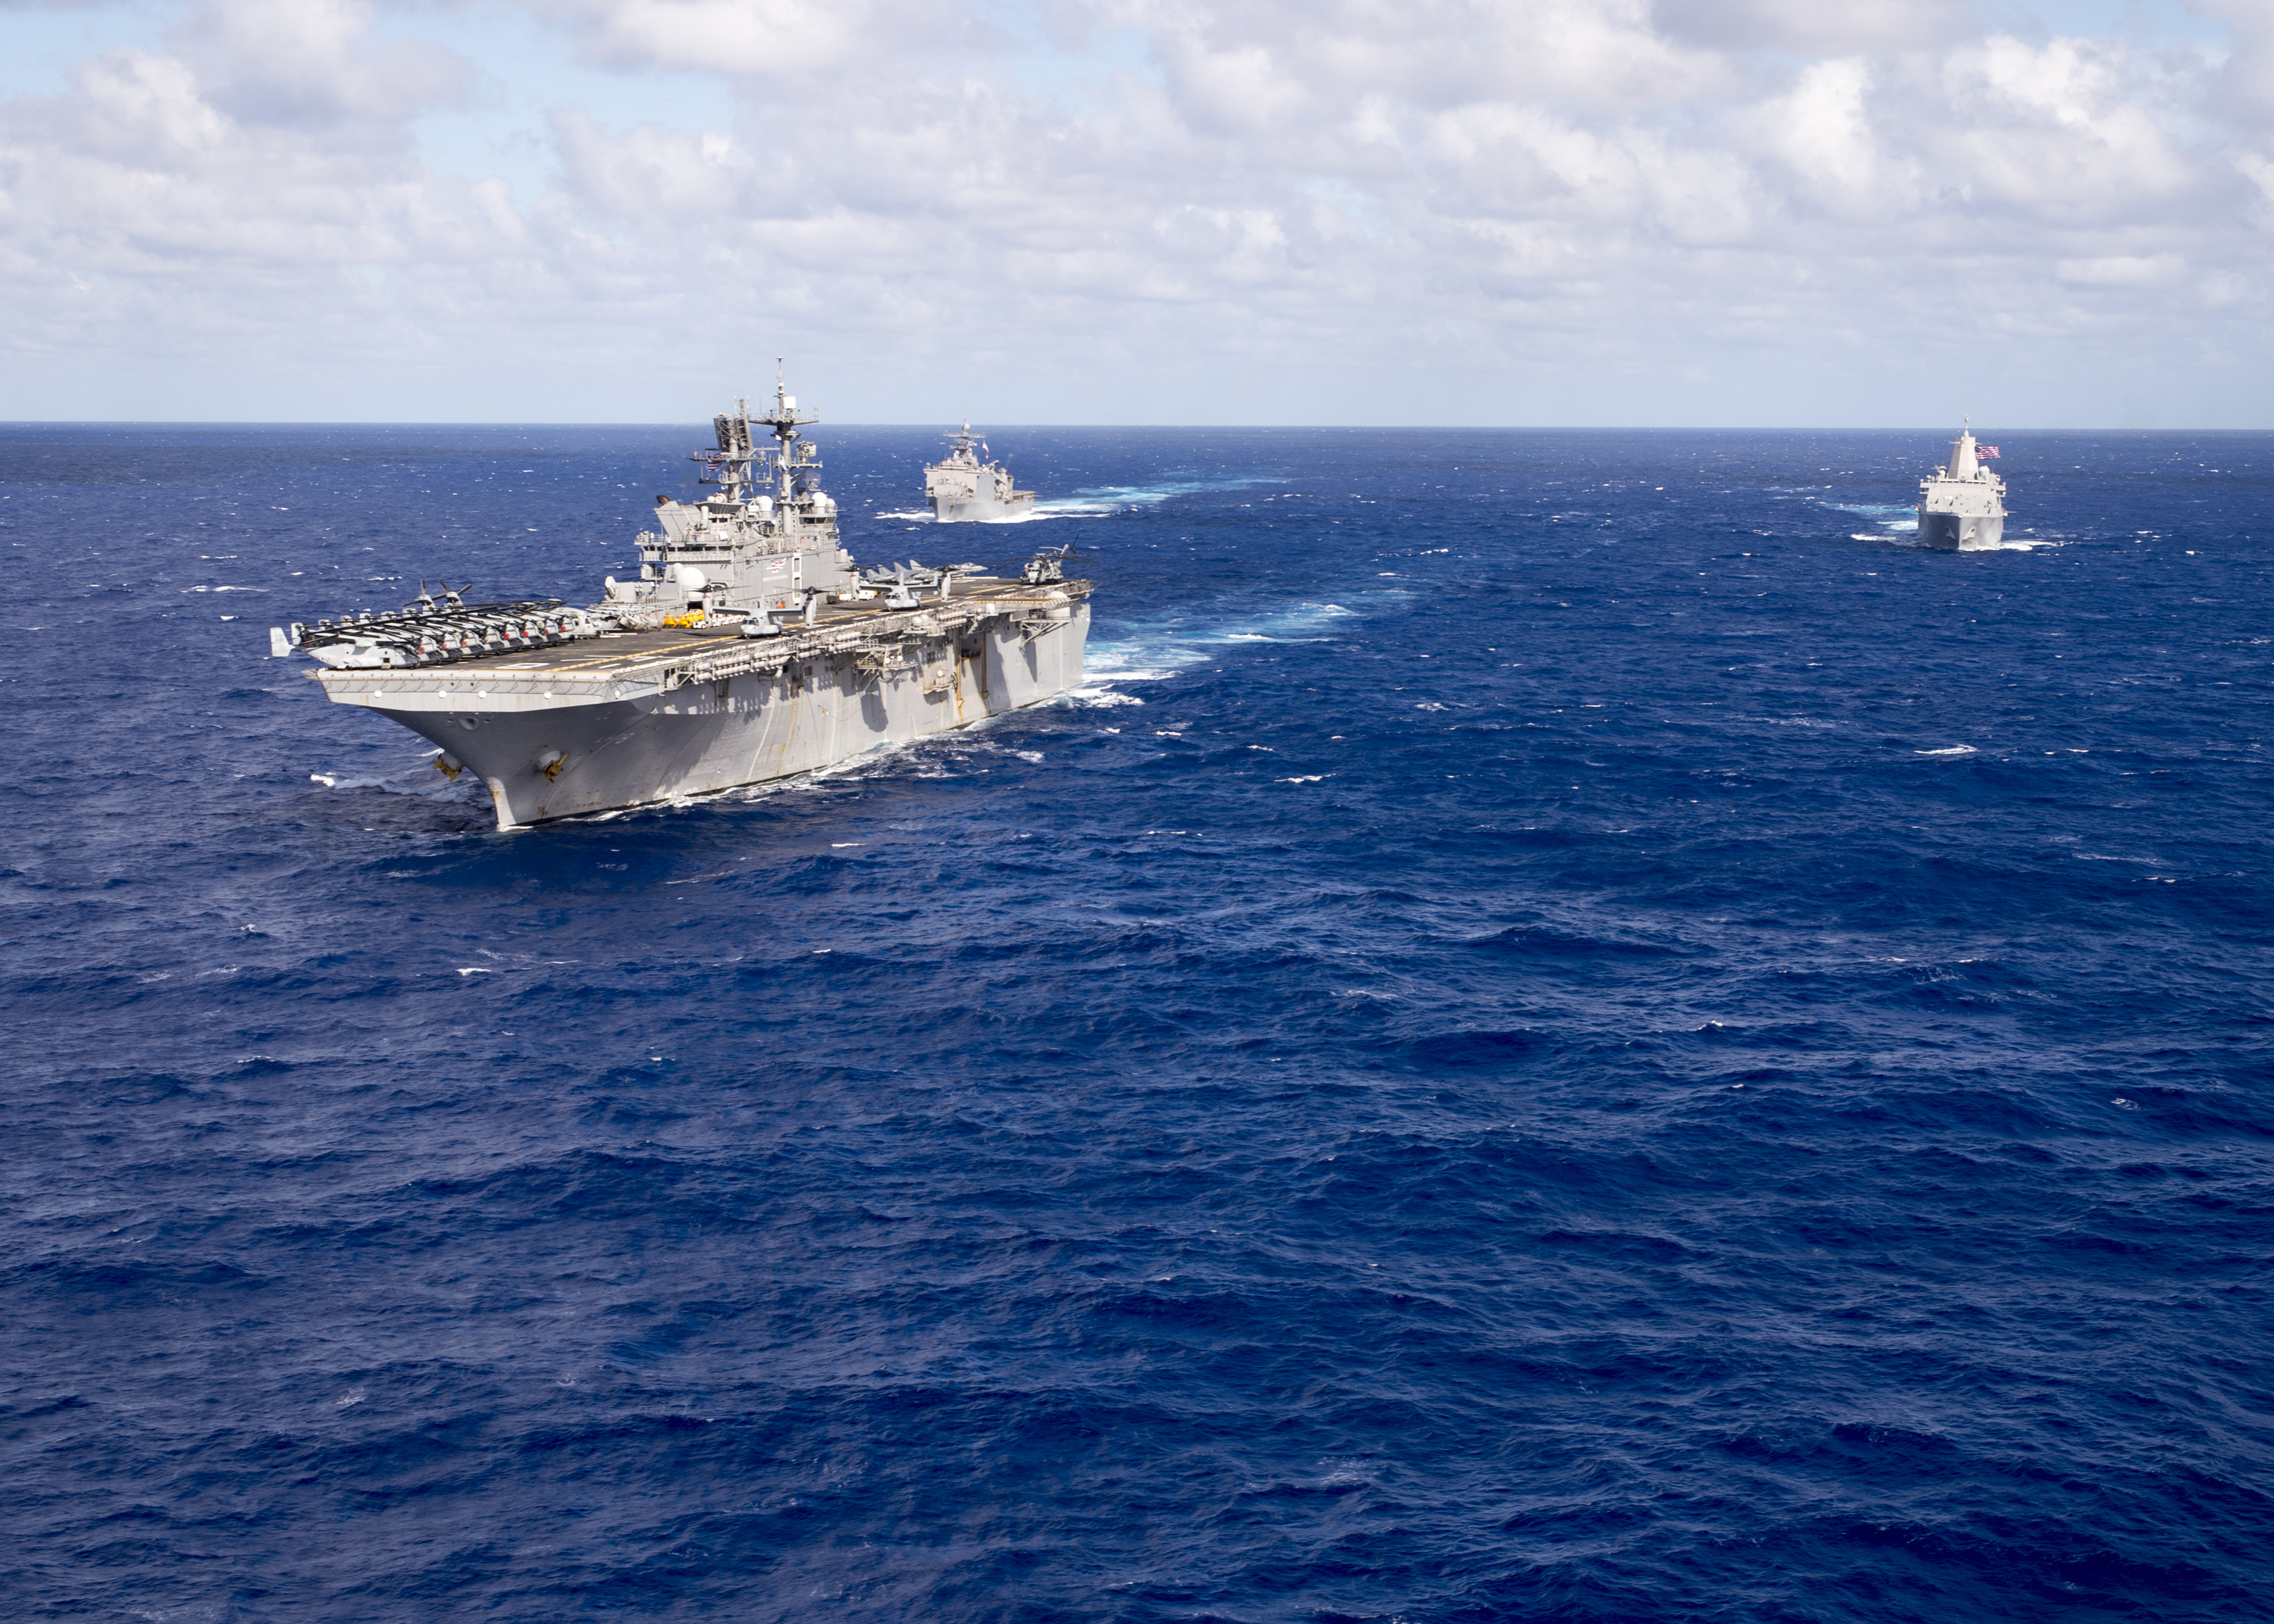 The Makin Island Amphibious Ready Group (ARG) underway in the western Pacific Ocean on Oct. 25, 2016. The Makin Island ARG is comprised of the amphibious assault ship USS Makin Island (LHD 8), the amphibious dock landing ship USS Comstock (LSD 45) and the amphibious transport dock ship USS Somerset (LPD 25), and is deployed with the embarked 11th Marine Expeditionary Unit. US Navy photo.